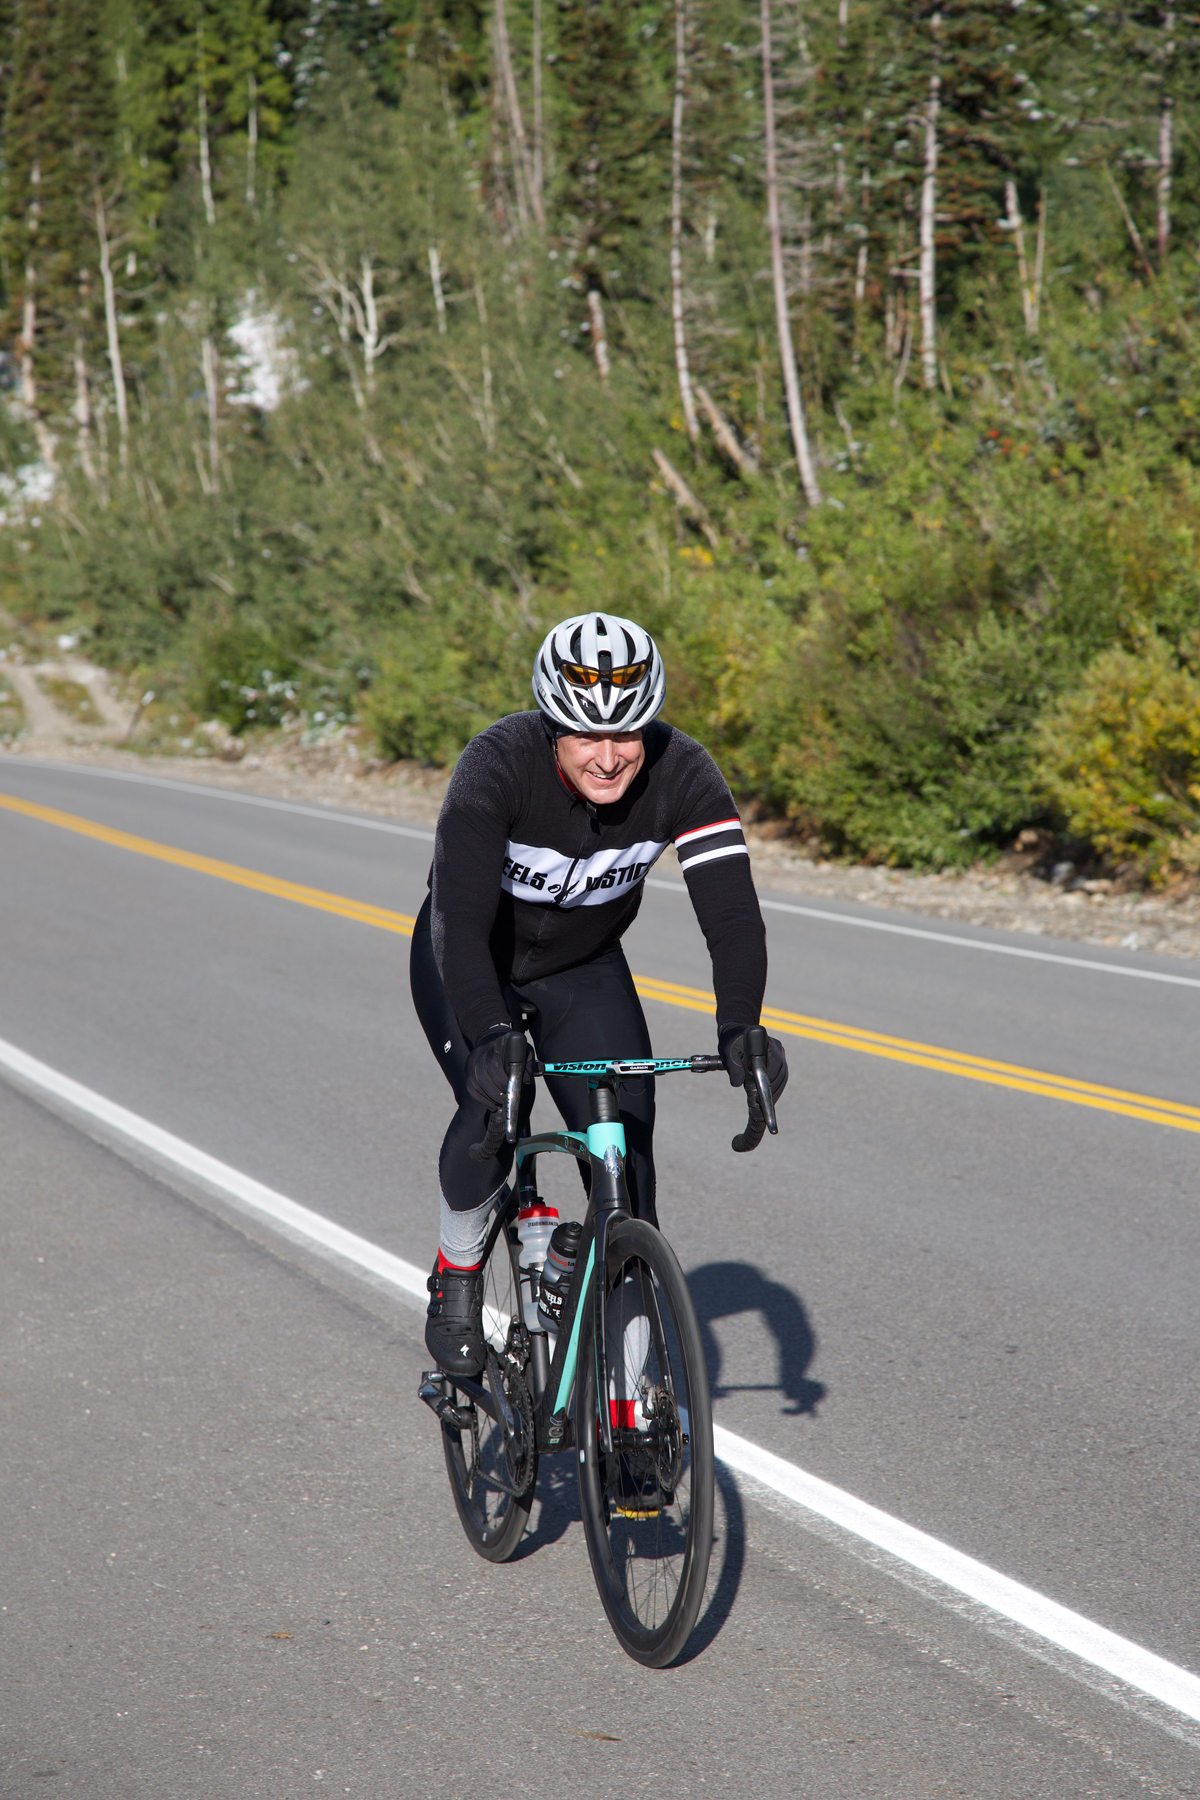 Scenes from the 5 Canyons Bike Challenge. Photo courtesy 5 Canyons.